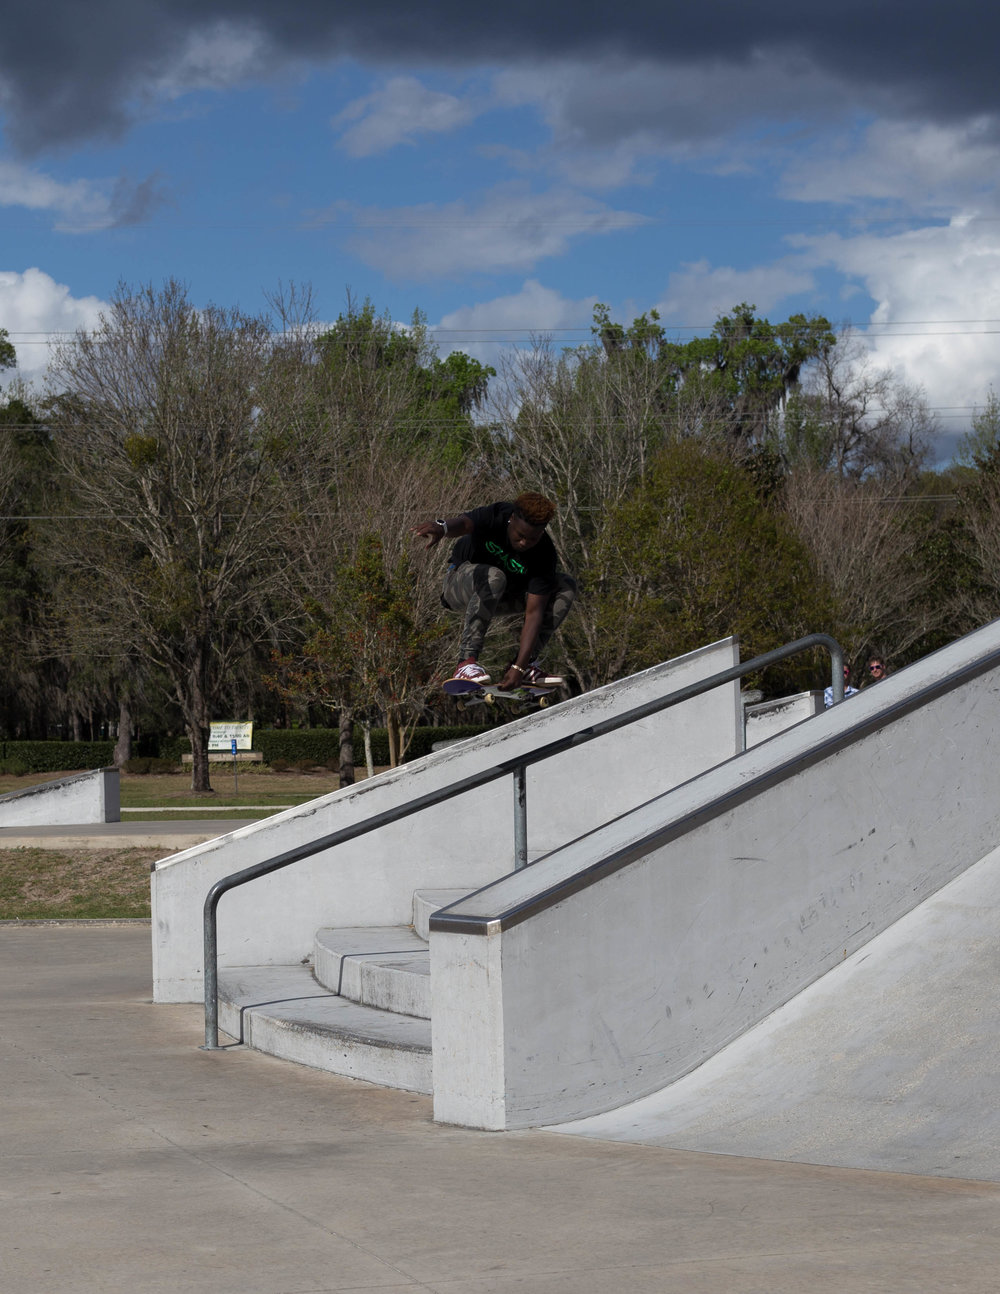 Xavier Collins. Grabbin' over the rail!